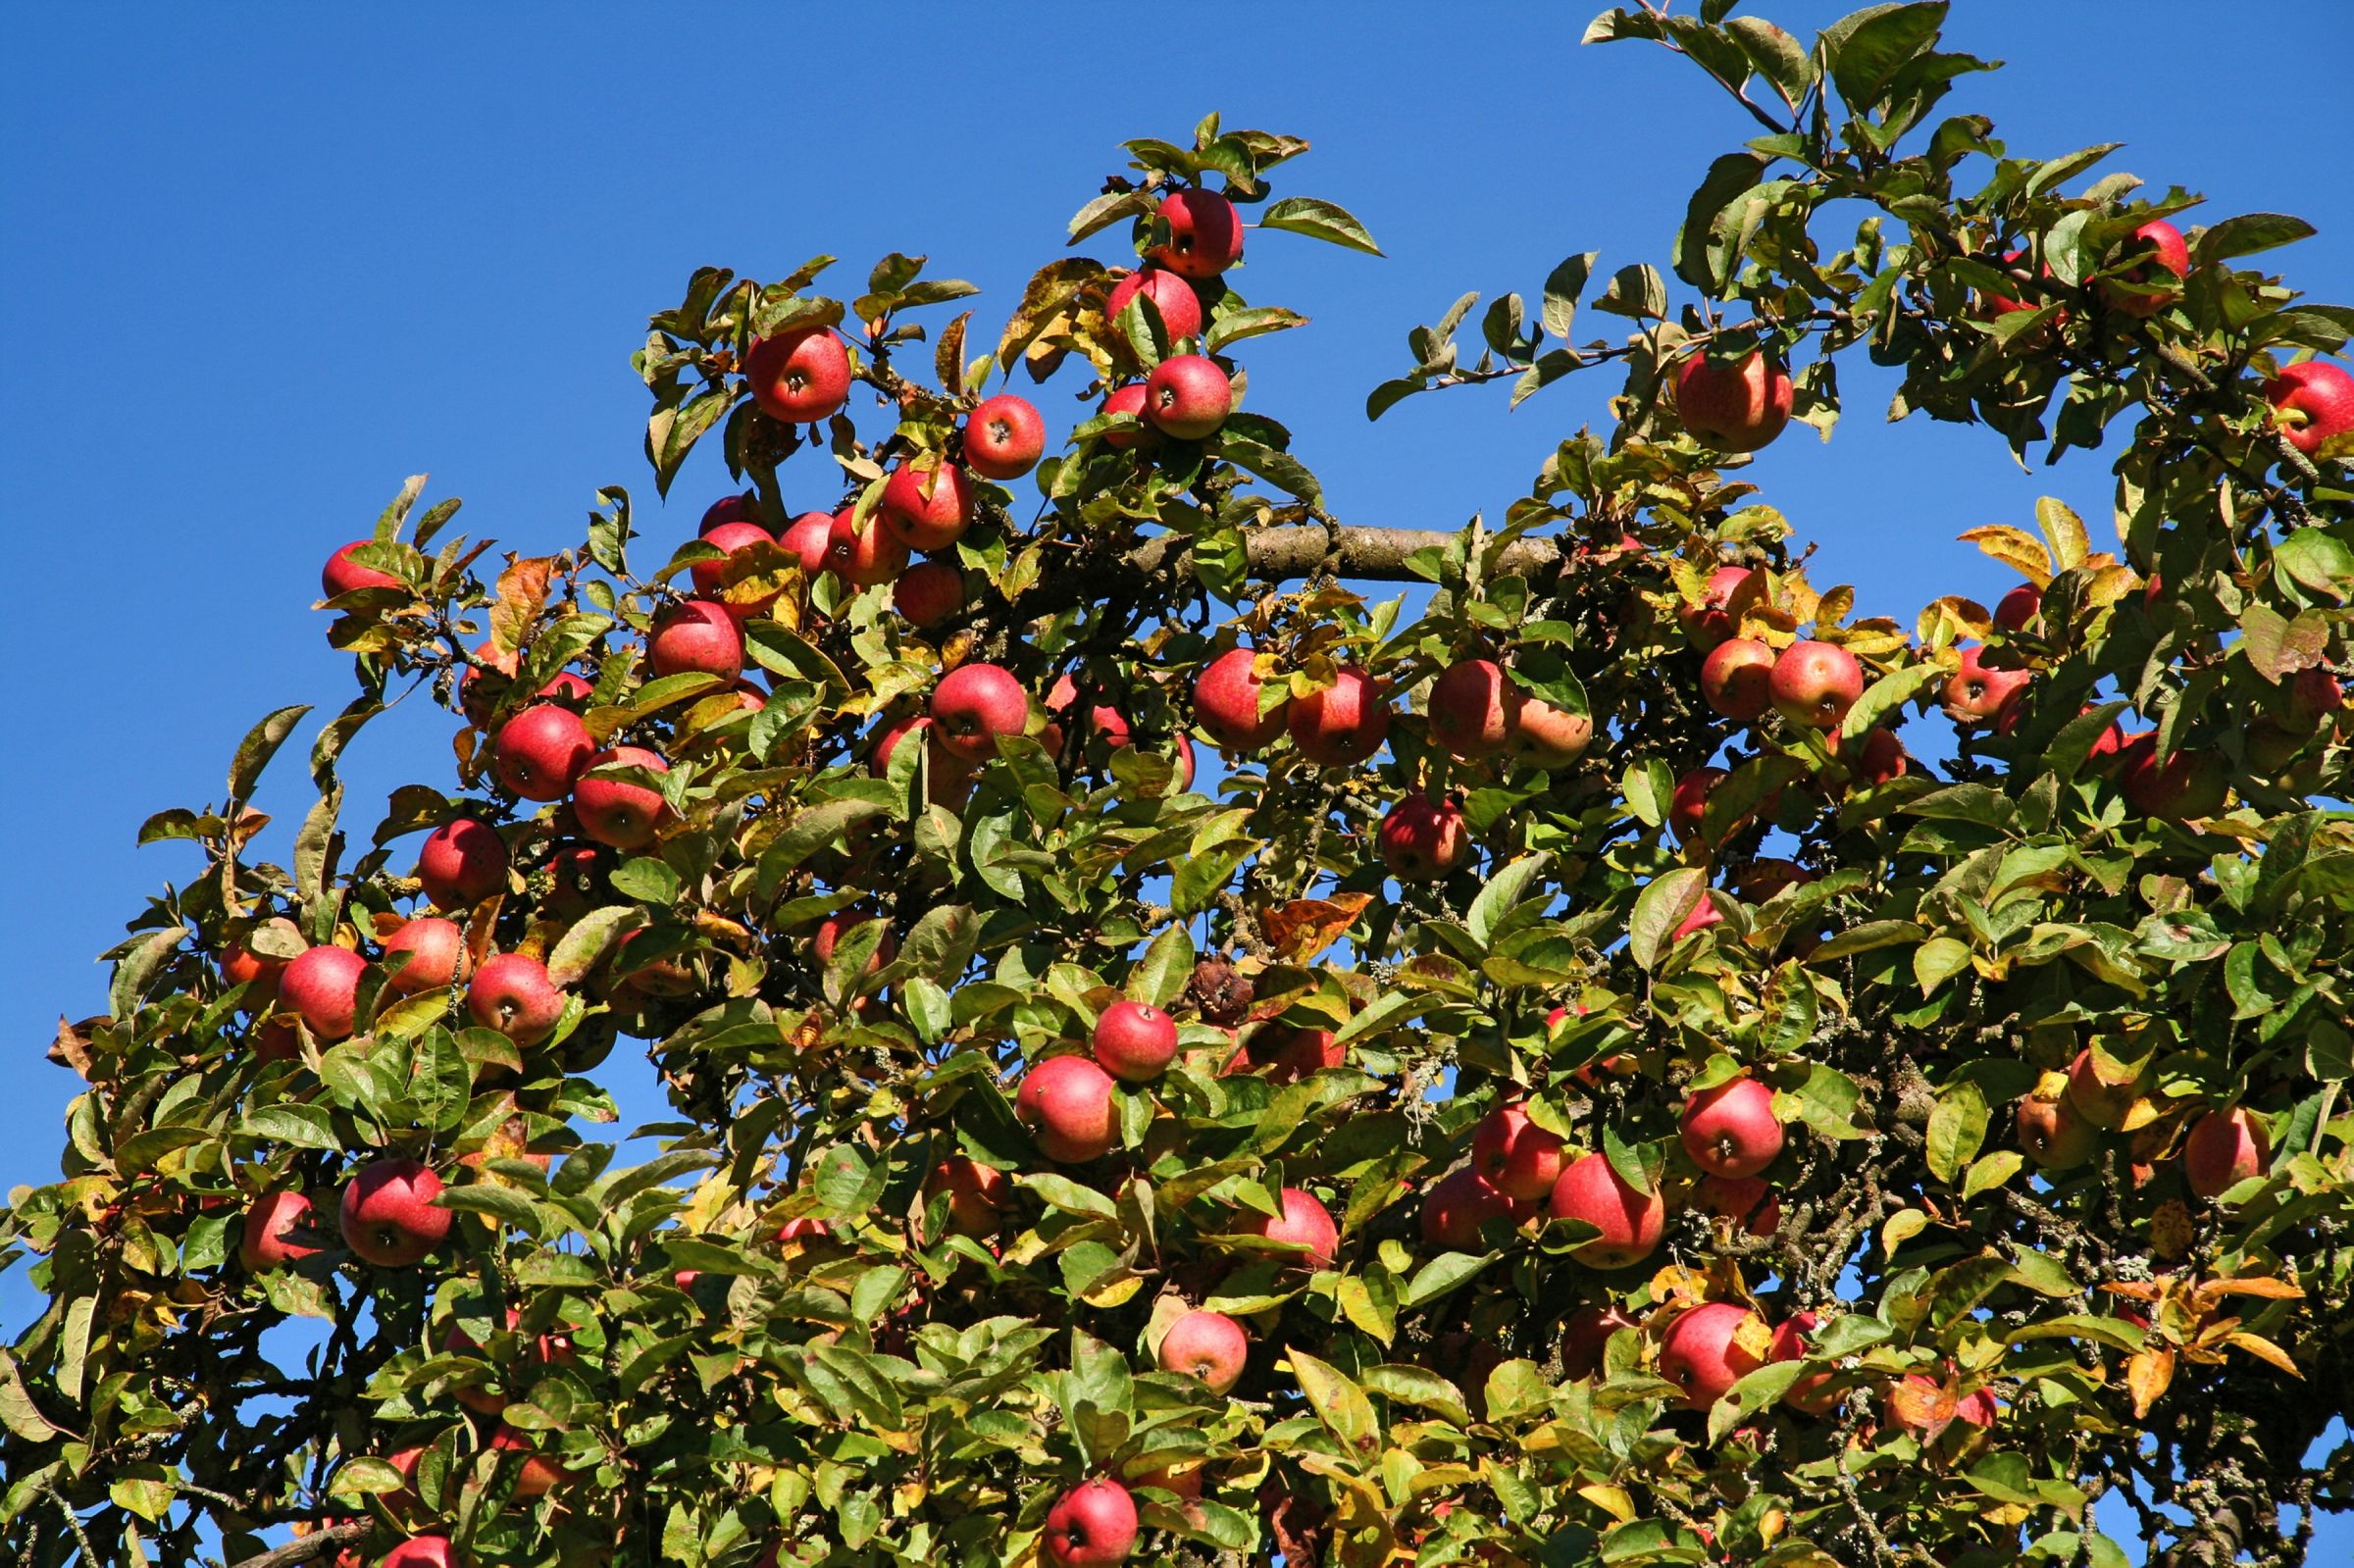 illinois state historical society hoping to plant apple tree in